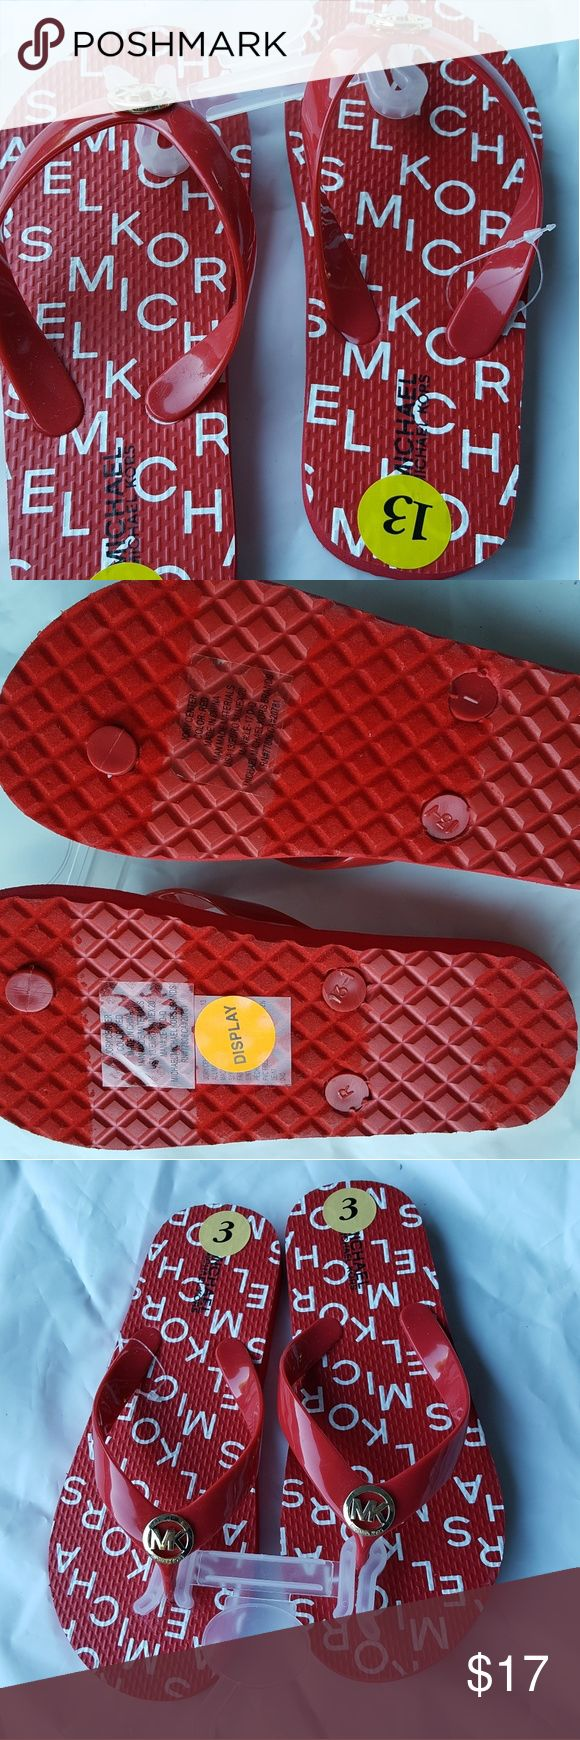 Michael Kors Jory Center Red Flip flops size 13-1 New with out tags.  This is a store display and have been tried on and shows minor signs of use of use.  Clean inside out.  Non smoking environment Michael Kors Shoes Sandals & Flip Flops